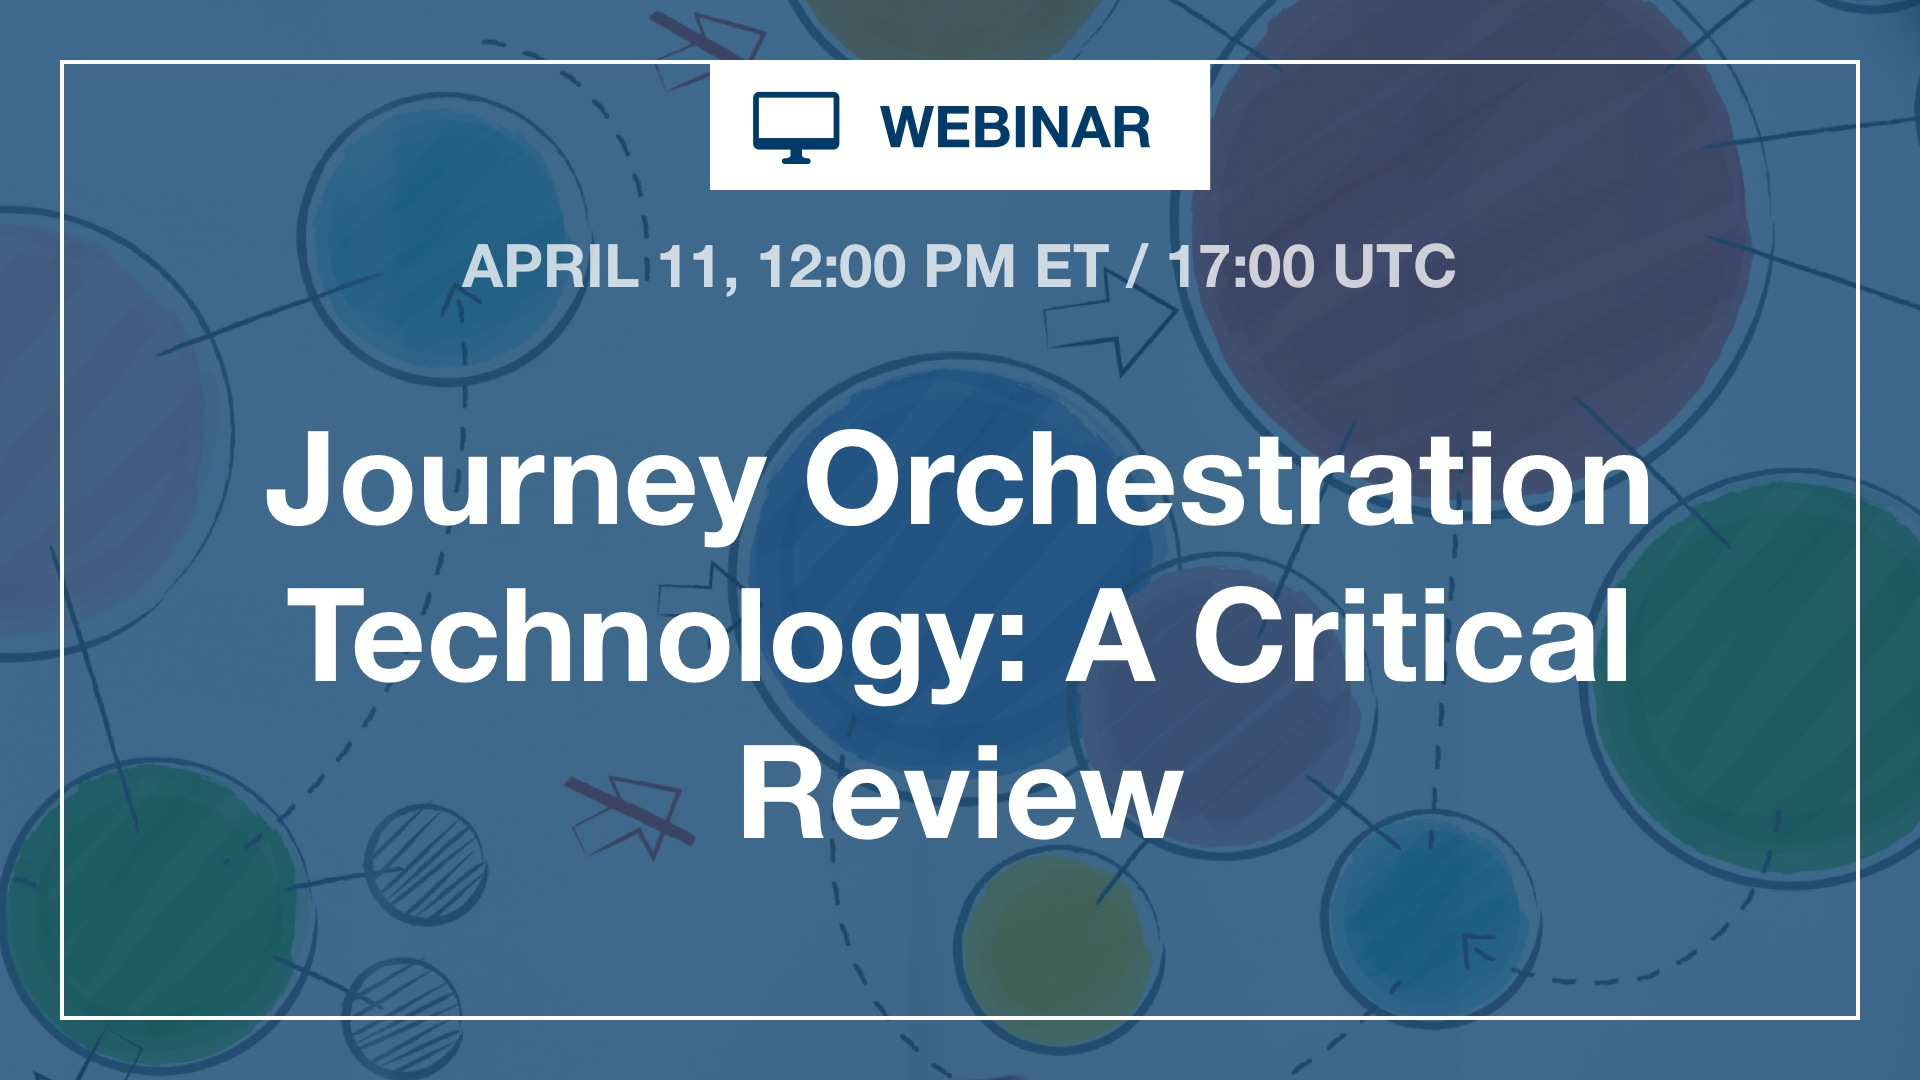 [Webinar] Journey Orchestration Technology: A Critical Review